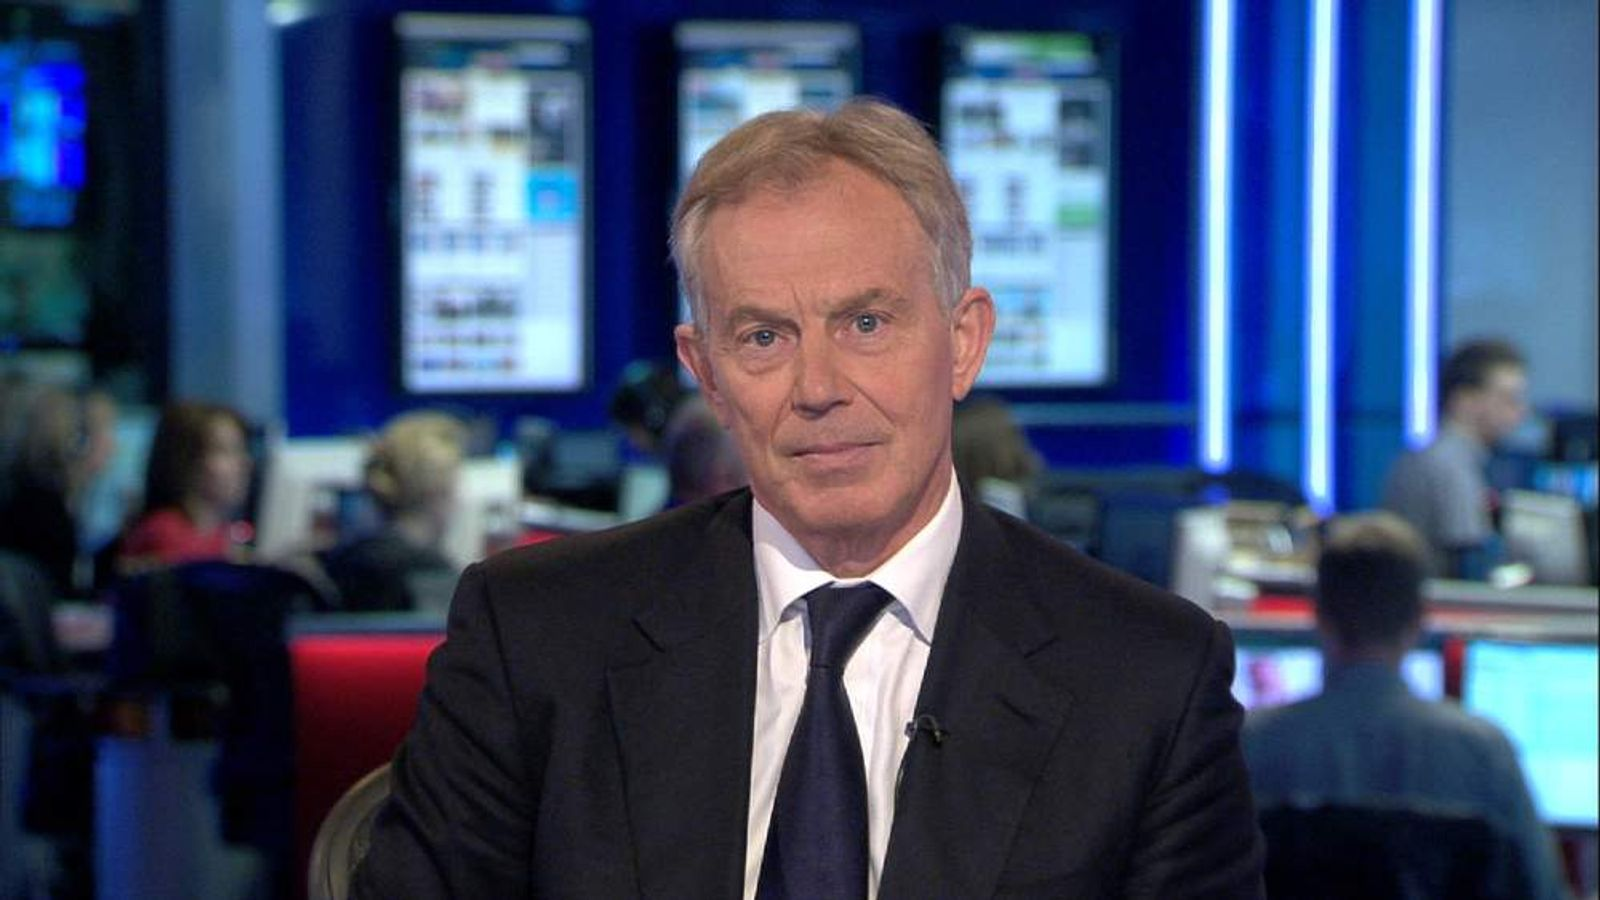 Middle East envoy Tony Blair speaks to Sky News